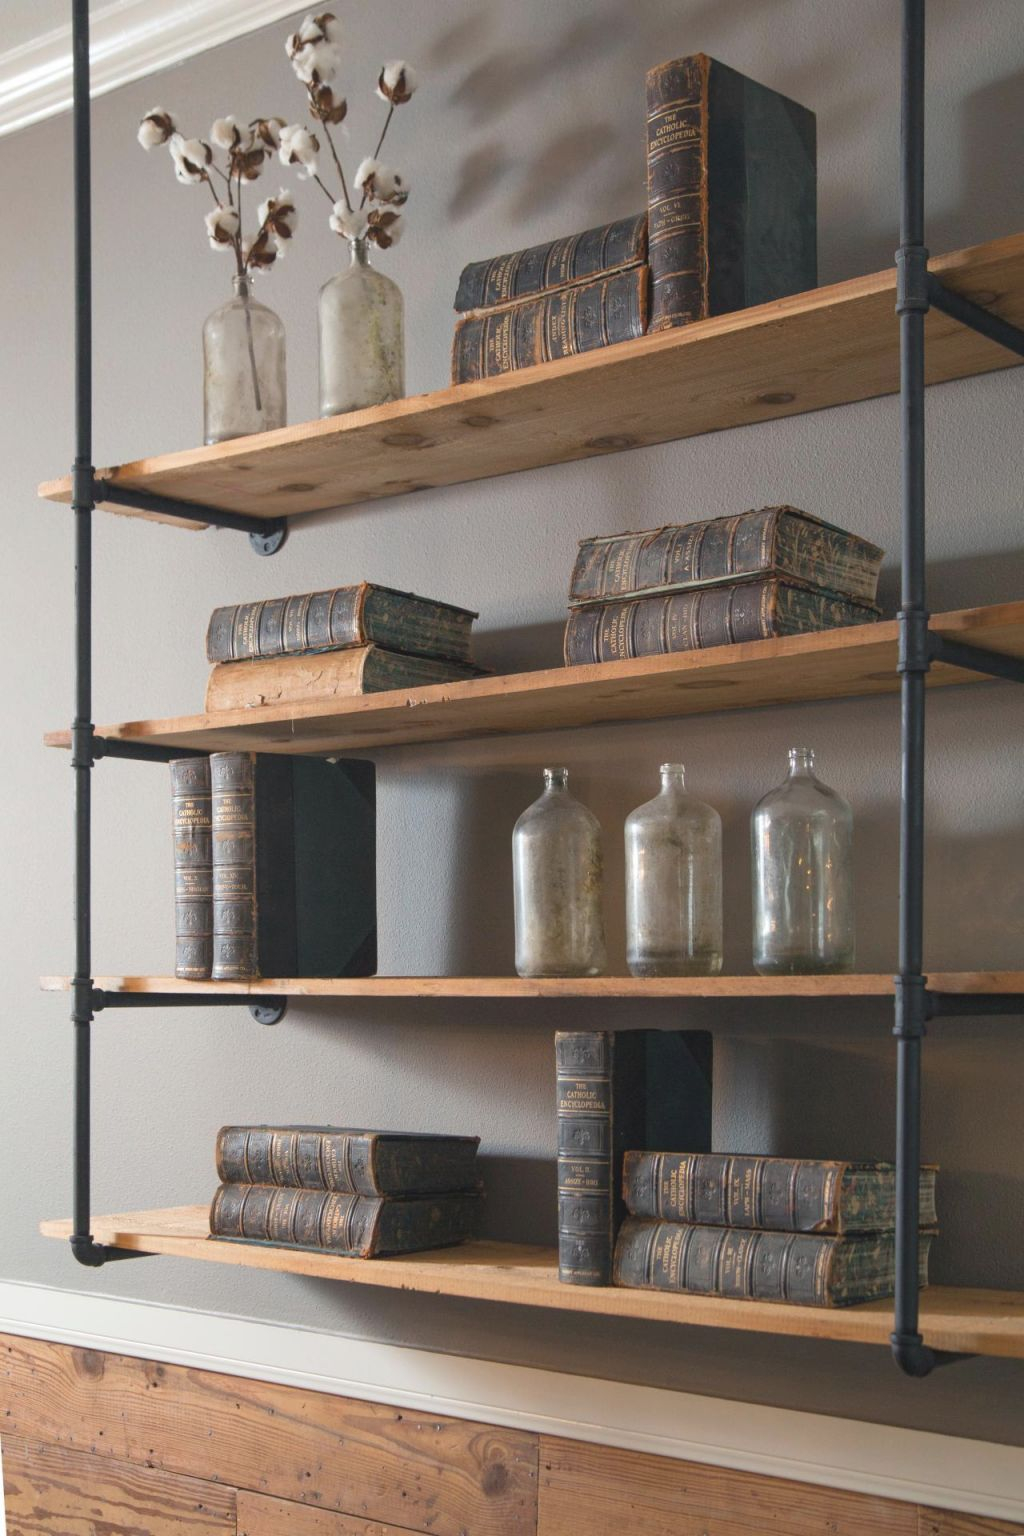 Make Your Bookshelves Shelfie-Worthy With Inspiration From with Decorating Shelves In Living Room